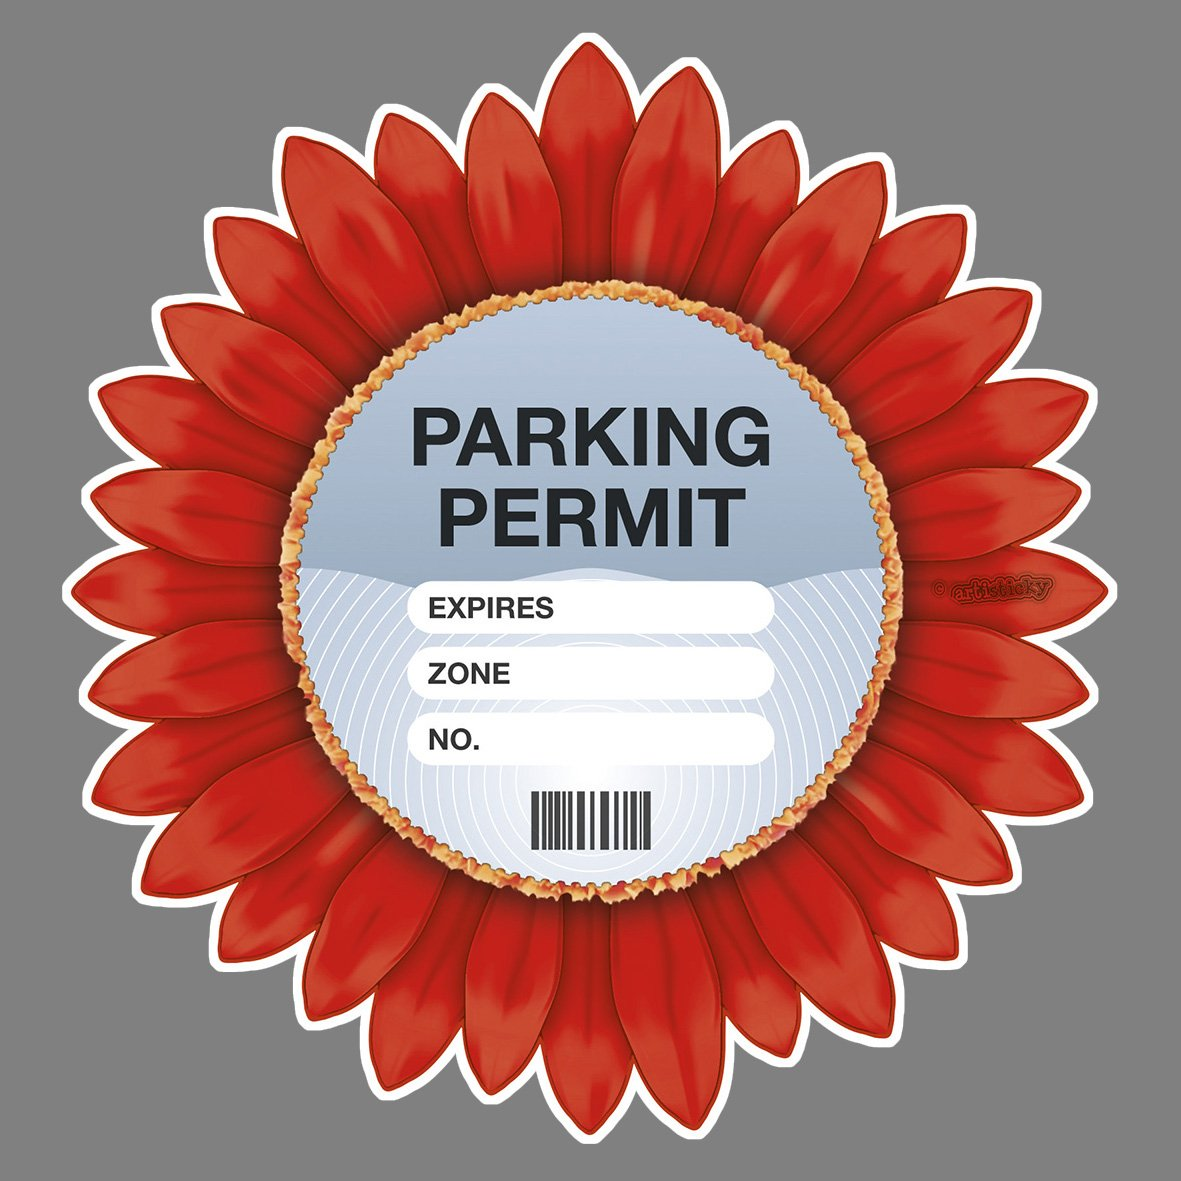 Parking Permit Holder Skin RED Flower Gerbera - Free Postage Artisticky AS-0058